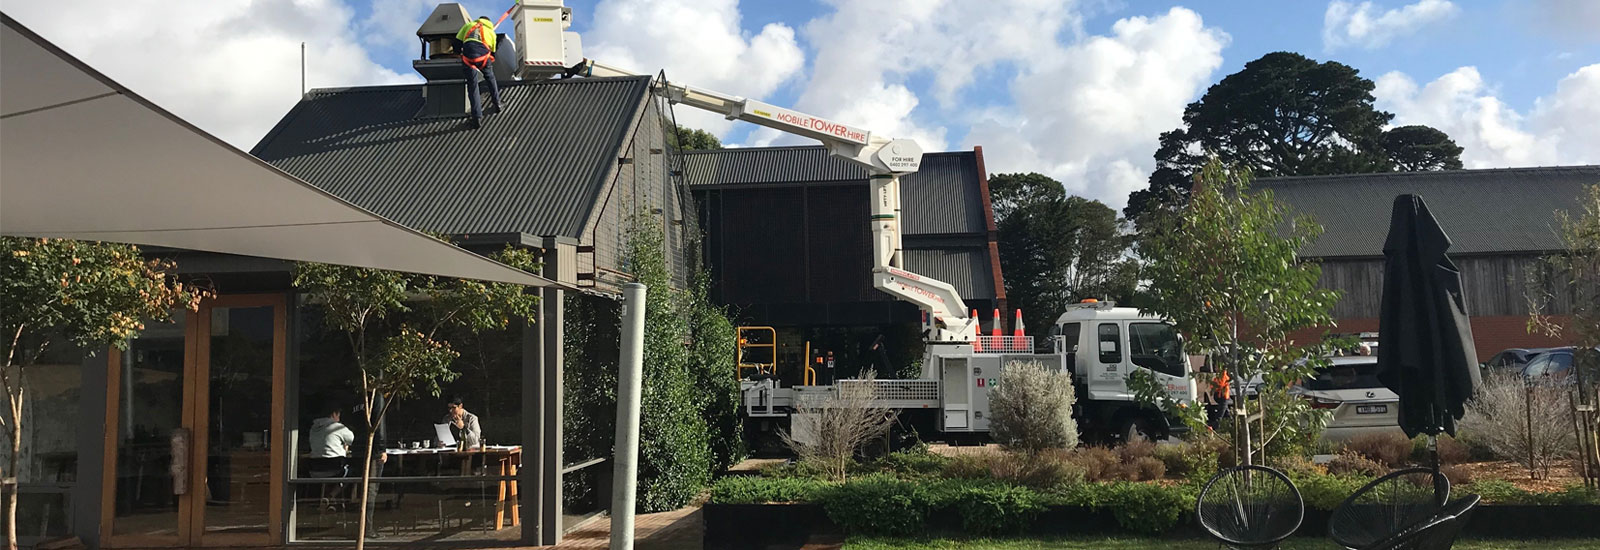 Restaurant Exhaust Fan Cleaning Melbourne   Mobile Tower Hire Geelong